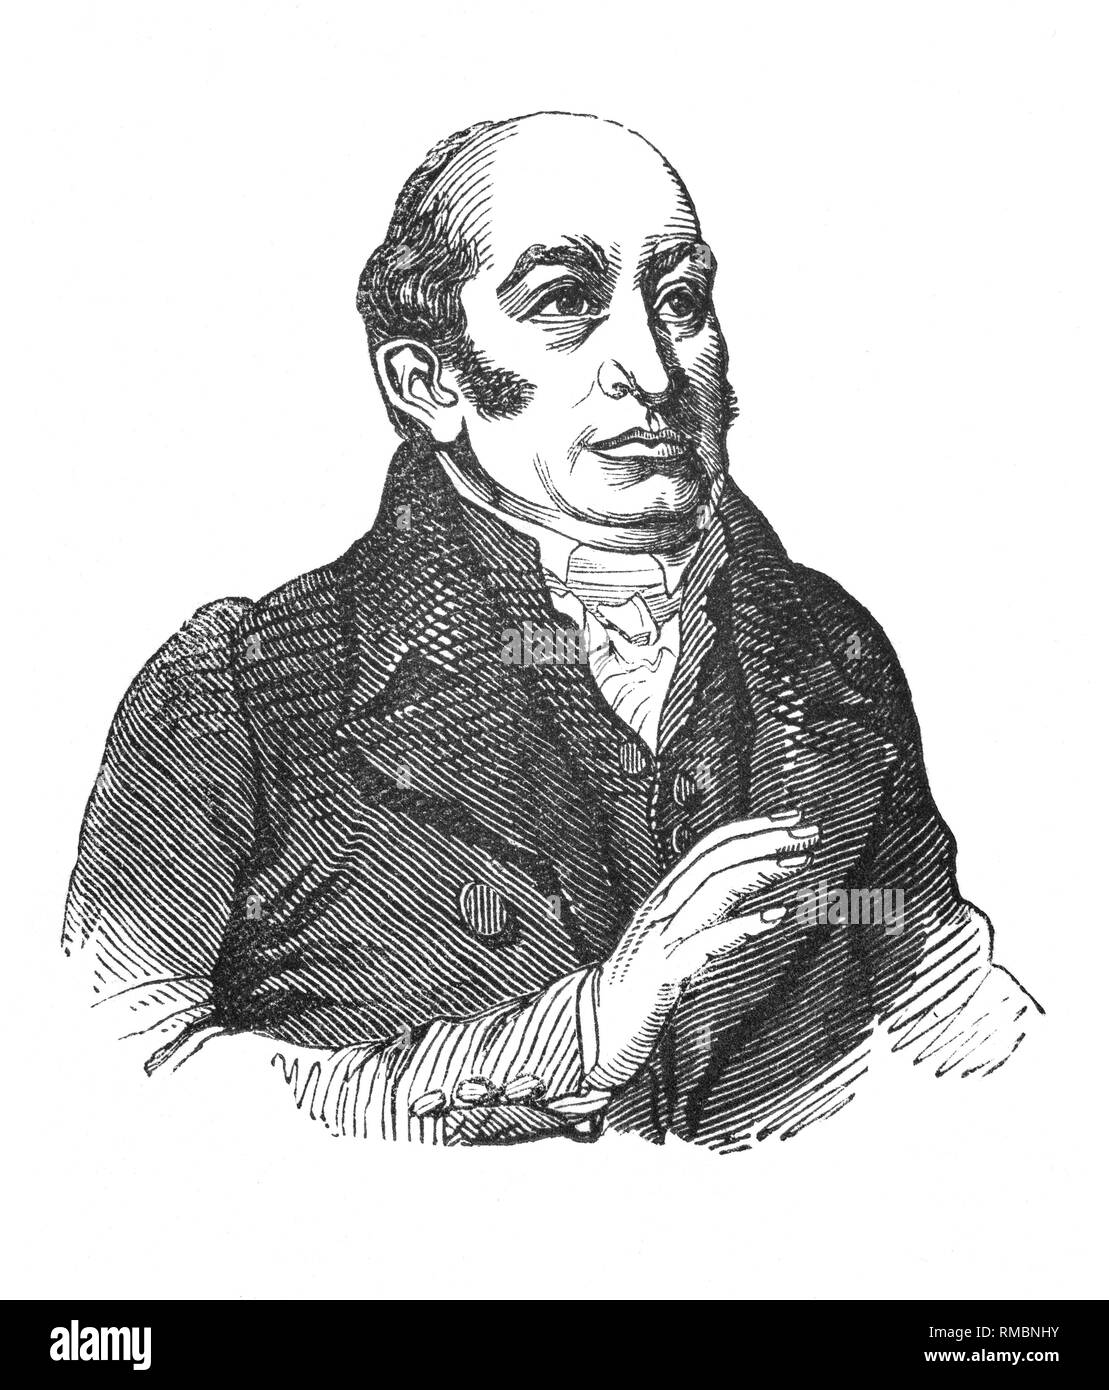 The Rev. Robert Hall (2 May 1764 – 21 February 1831) was an English Baptist minister, writer, social reformer, and an outstanding preacher.  In 1790 Hall became pastor of a church at Cambridge, where he remained for 15 years and acquired a reputation for his fine, often outspoken sermons. He advocated freedom of the press, was influenced by the French Revolution to speak against corrupt government, and in 1791 defended the reformer and scientist Joseph Priestley in his criticism of institutional Christianity. - Stock Image